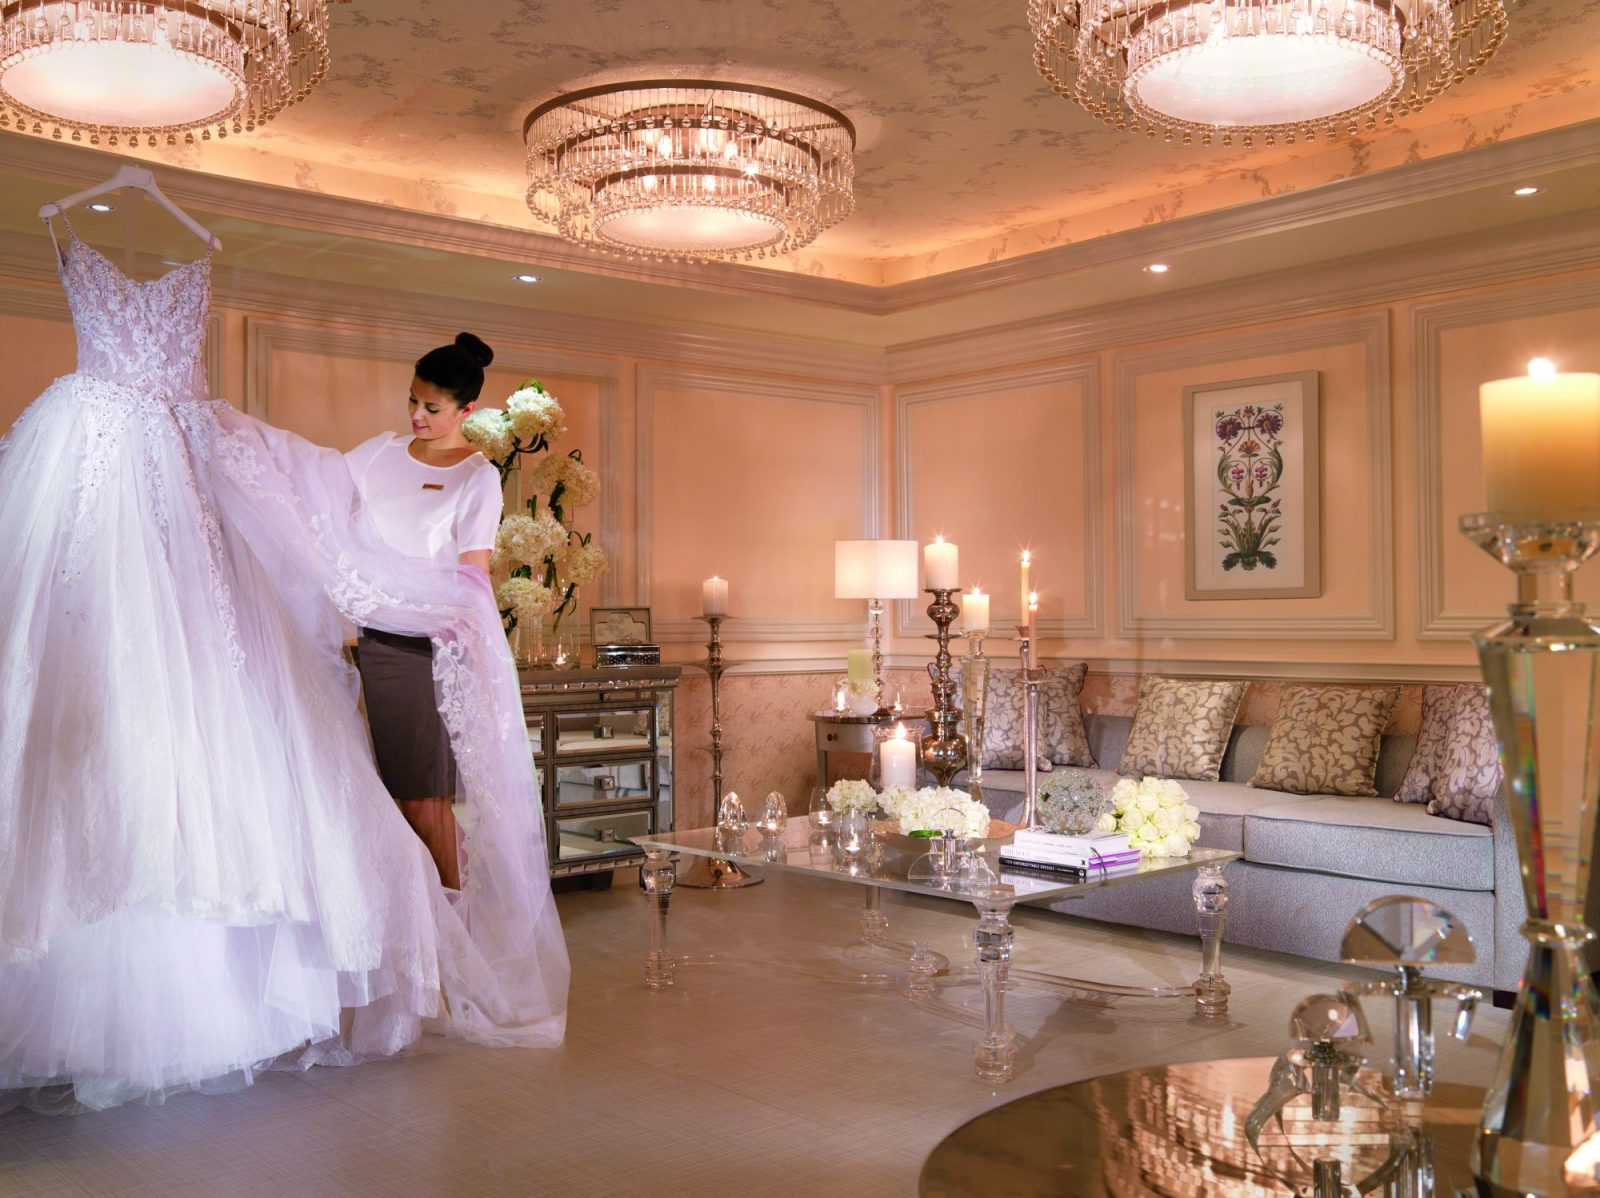 Wedding suite at Ritz-Carlton Abu Dhabi